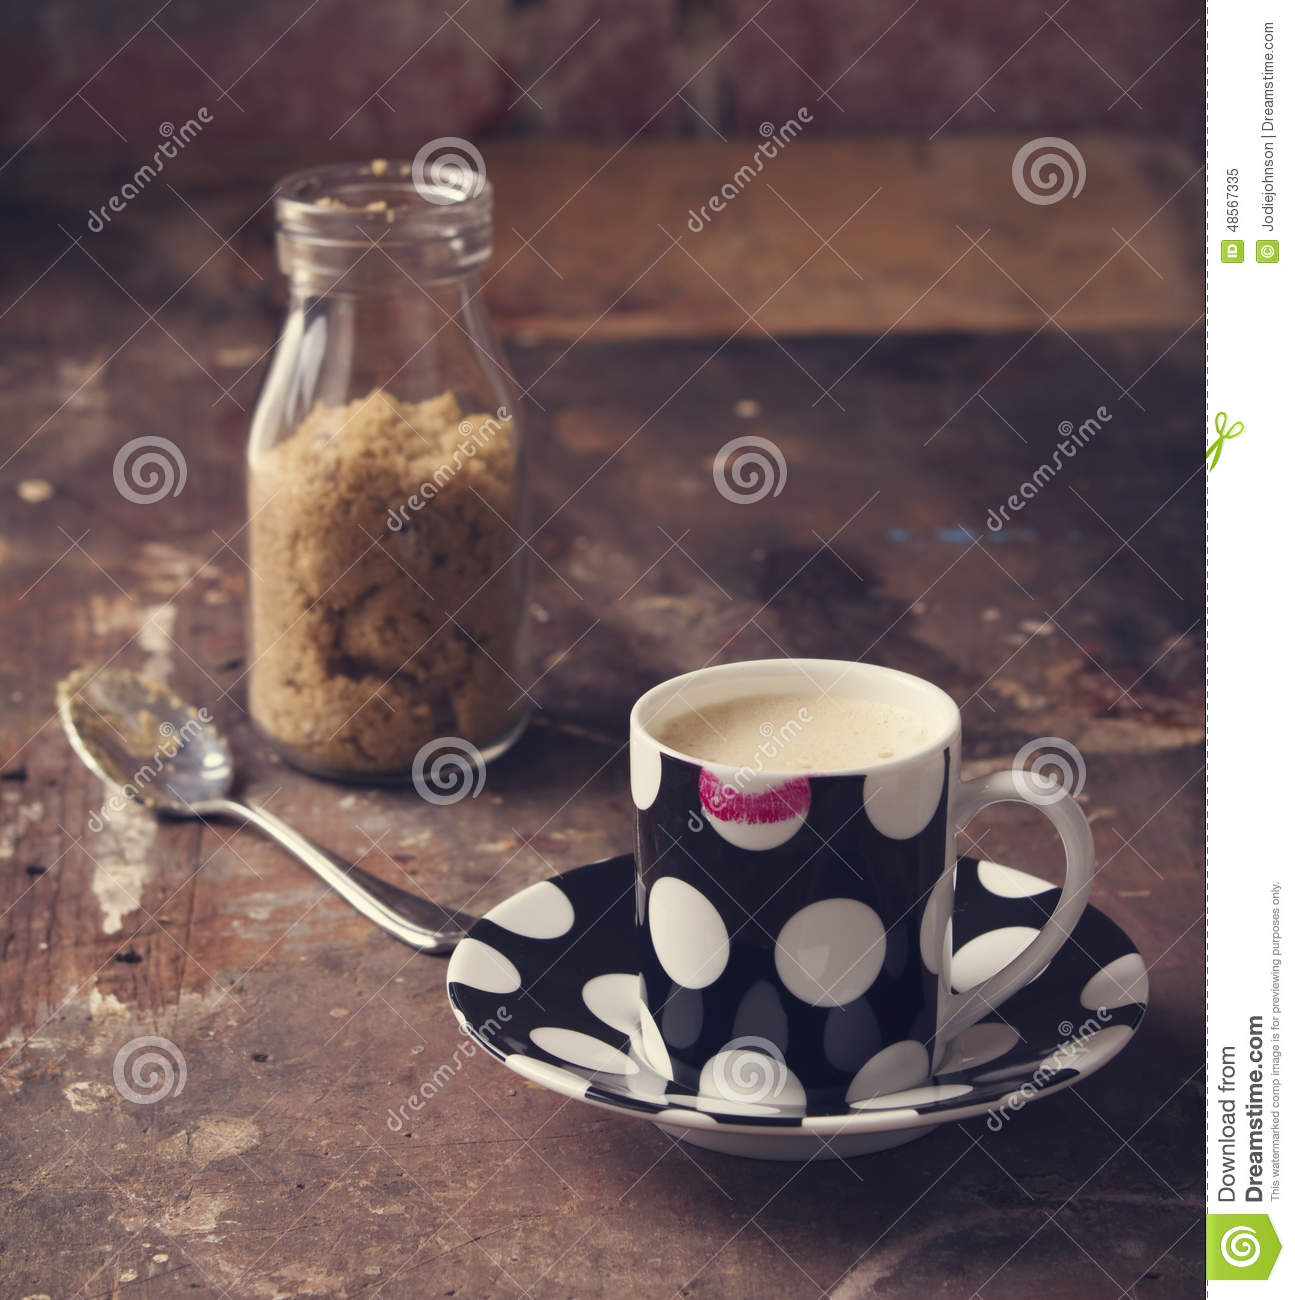 Lipstick on coffee cup in rustic cafe or studio setting